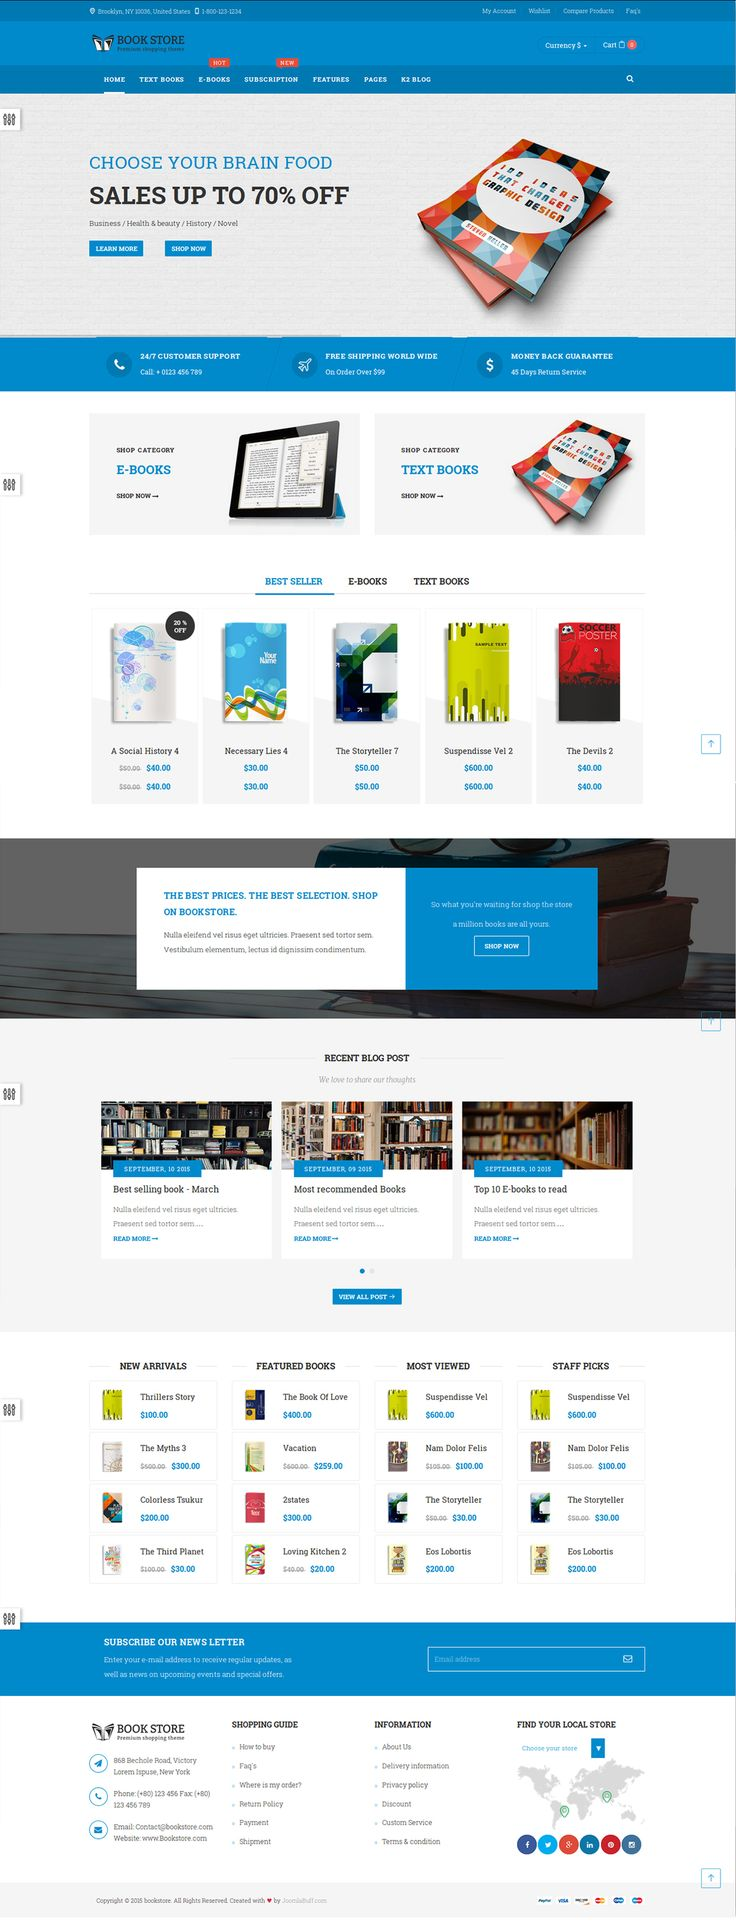 7 best bookstore - joomla ecommerce tempalte with ebook, Powerpoint templates